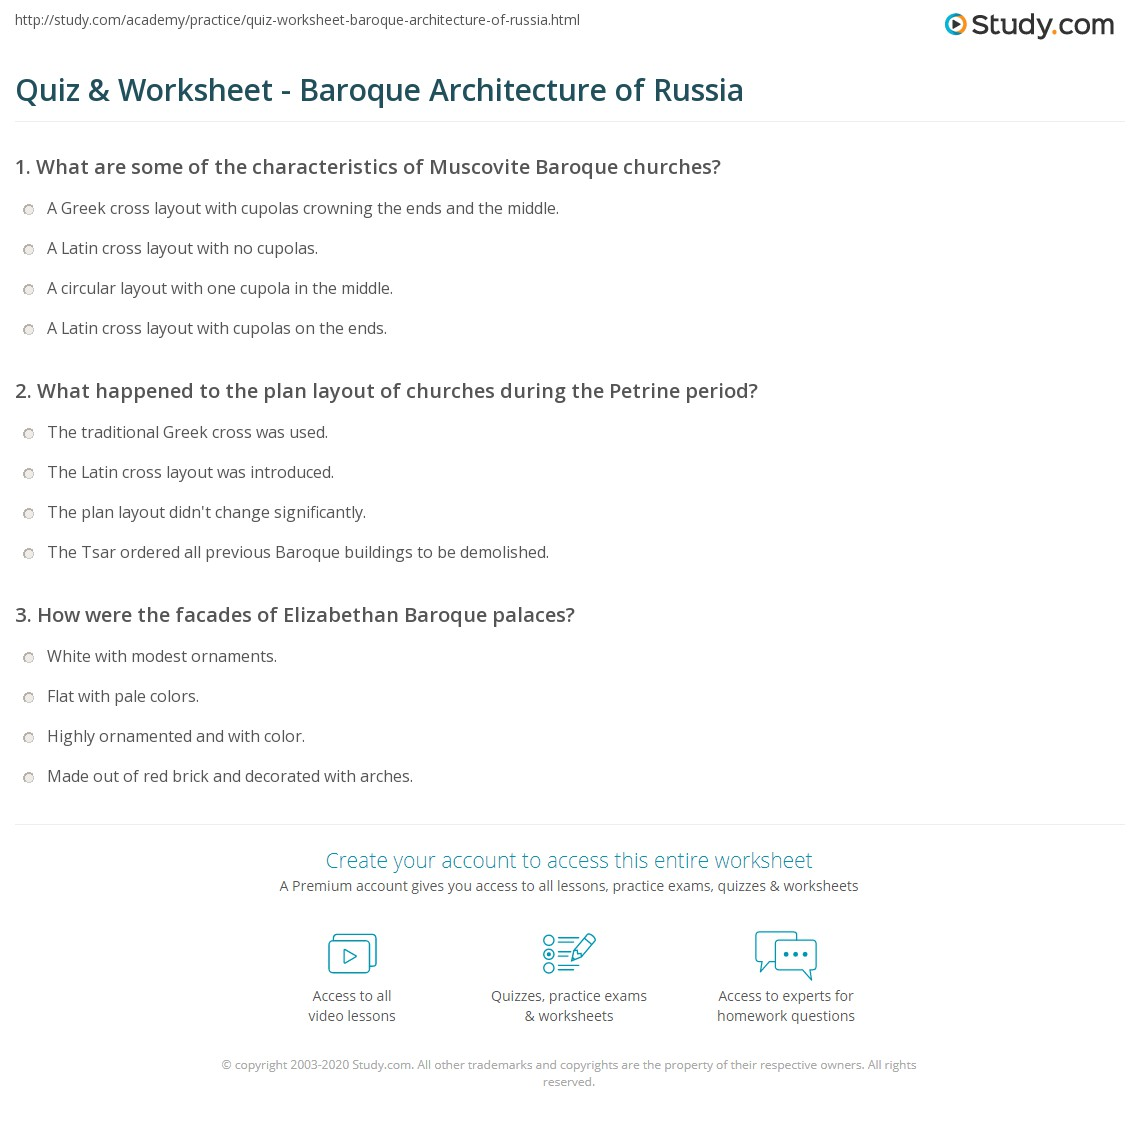 quiz & worksheet - baroque architecture of russia | study